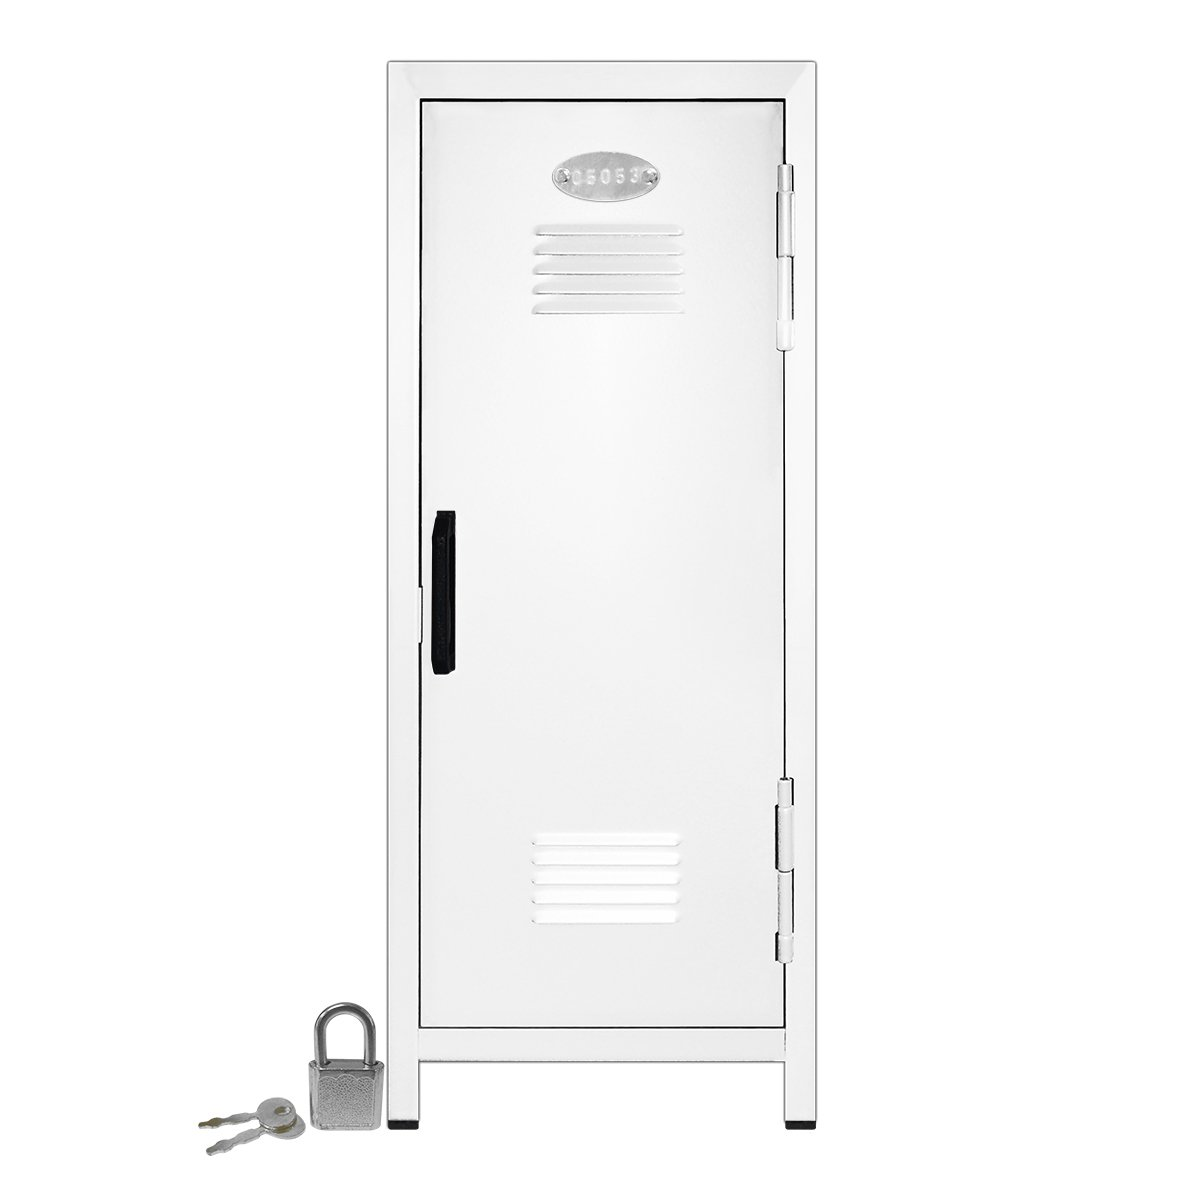 Mini Locker with Lock and Key White -10.75'' Tall x 4.125'' x 4.125'' by Mini Lockers by Magnetic Impressions